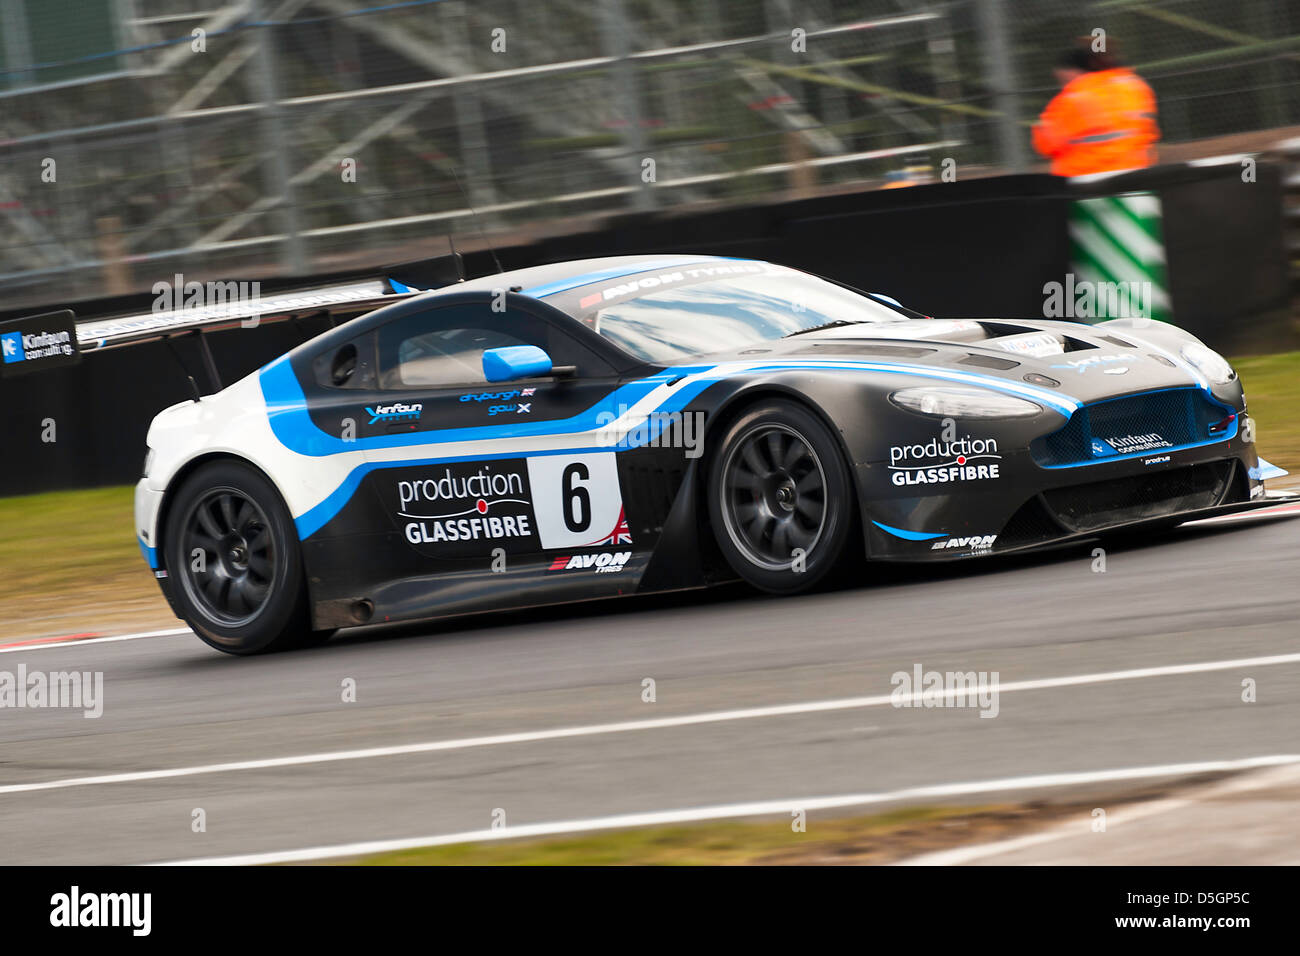 Aston Martin Racing Car Beaker Cup